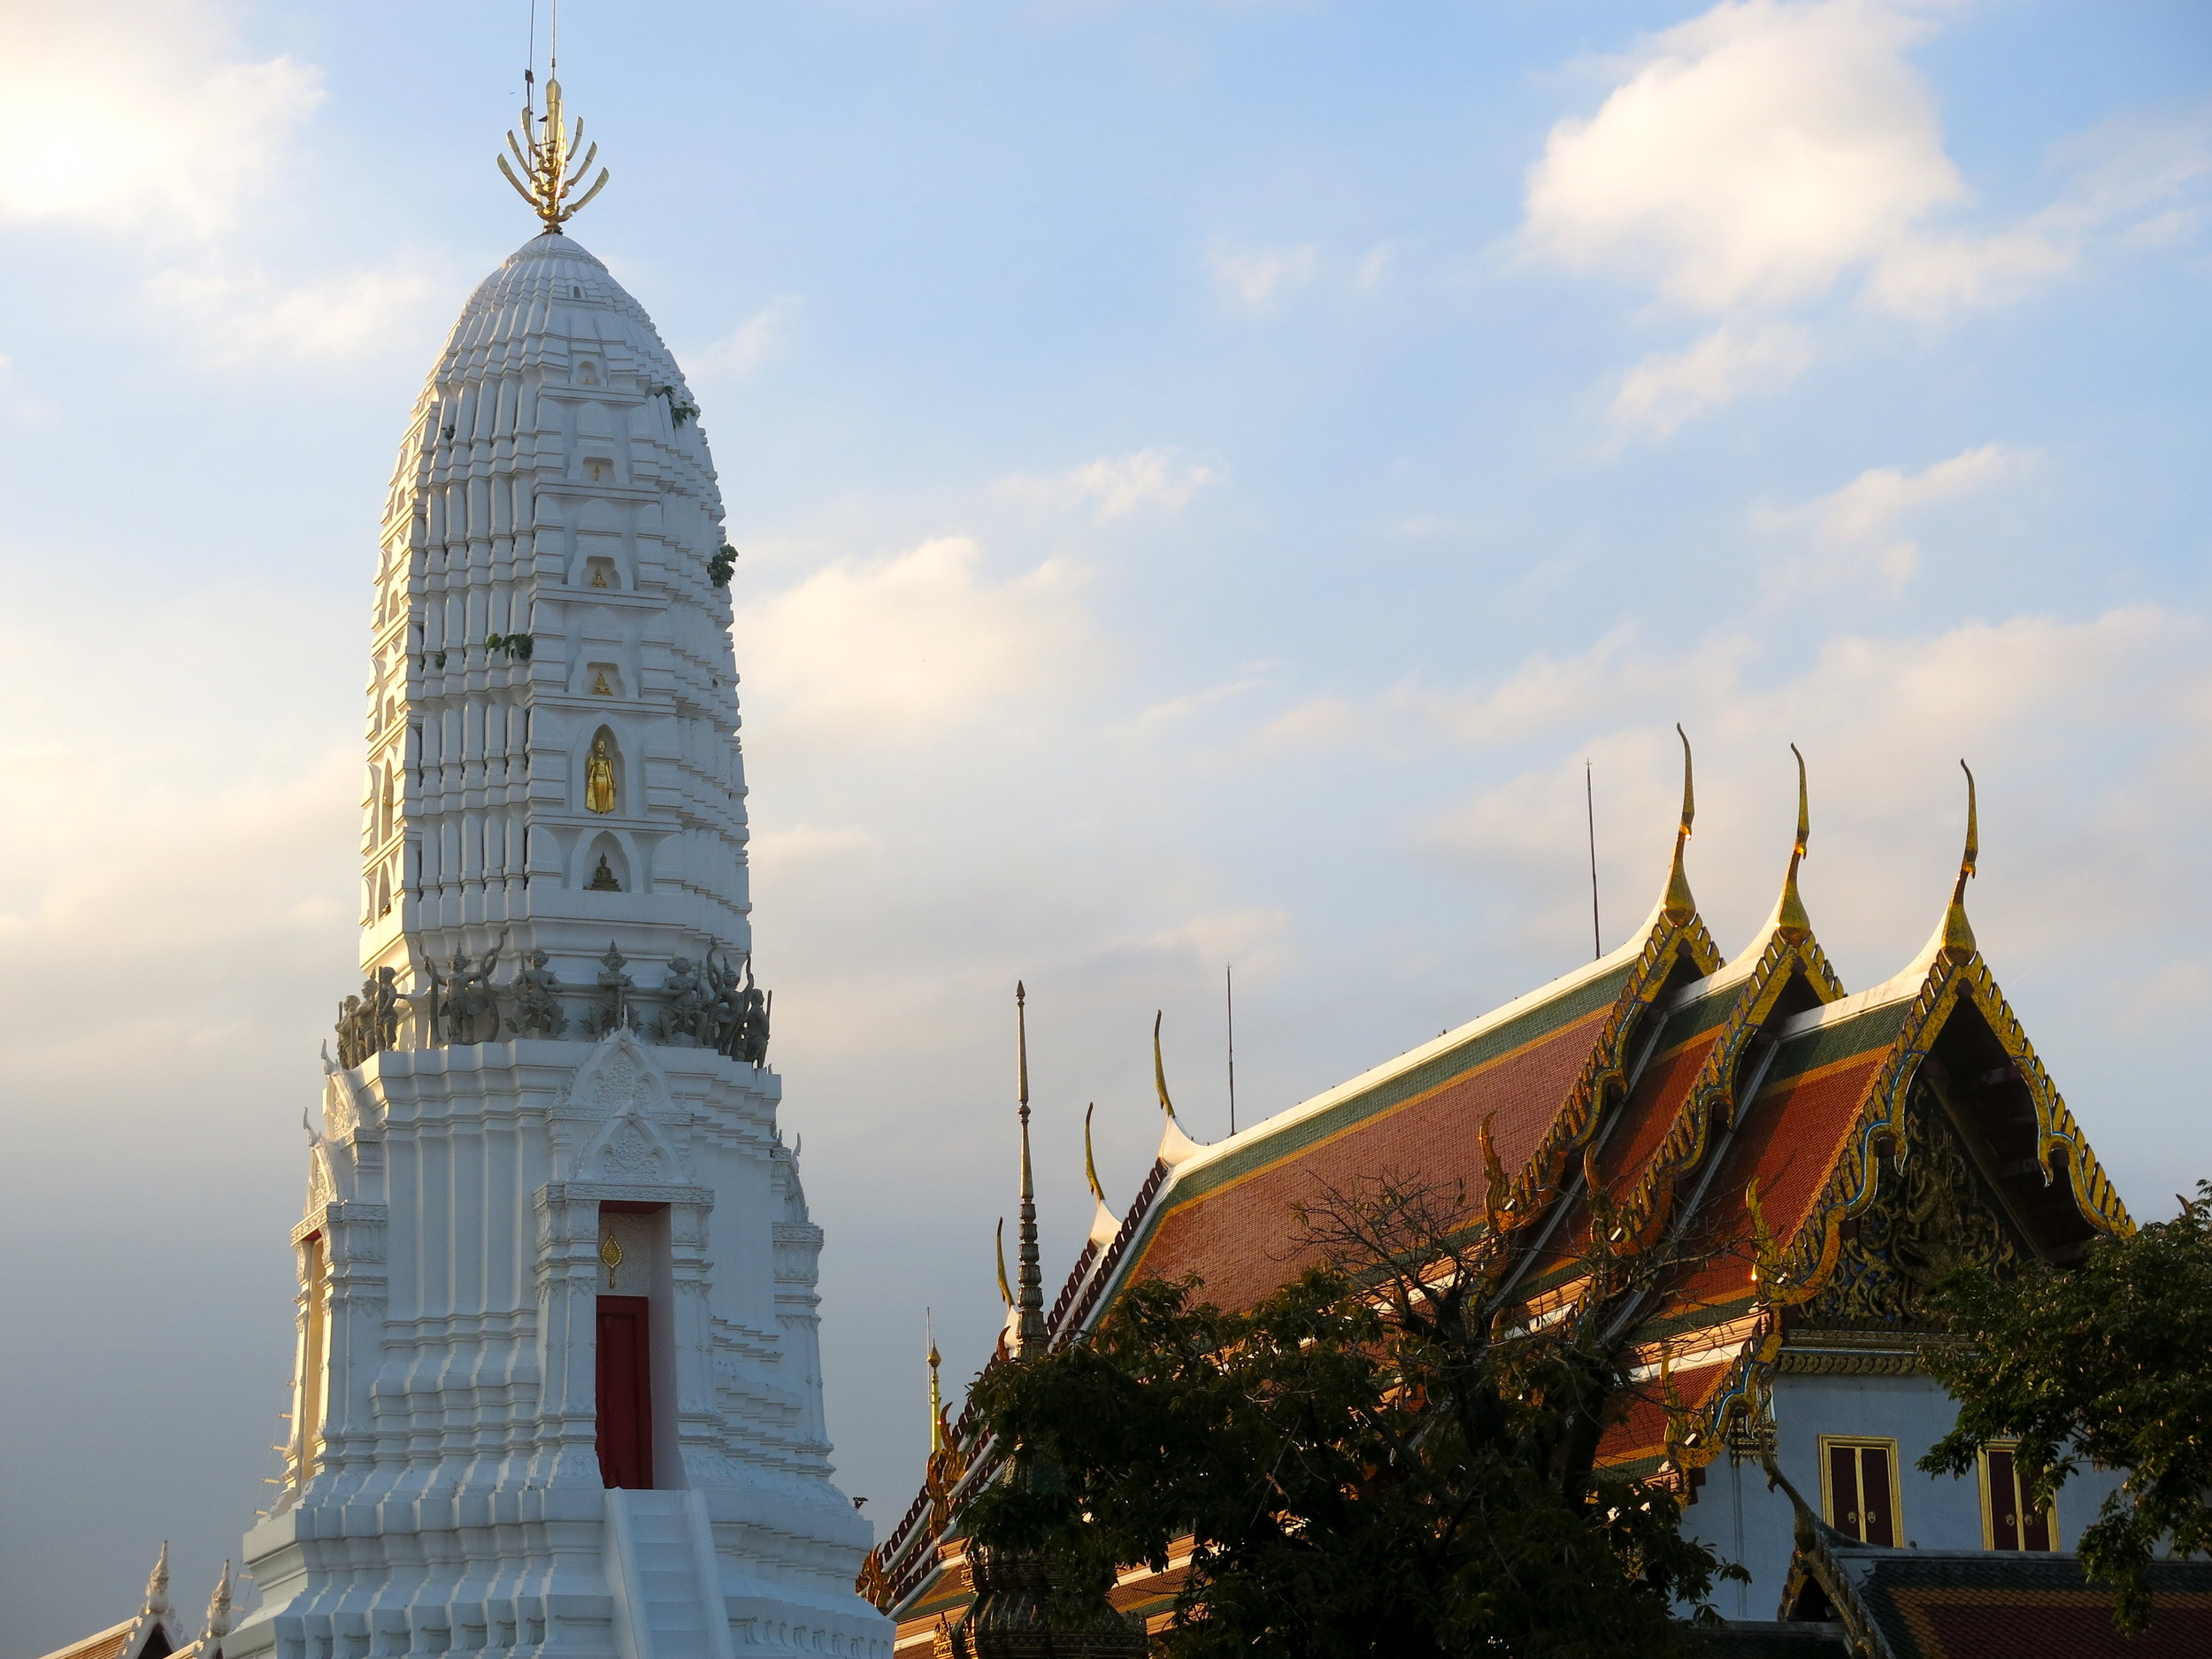 A prang is reserved to royal temples in Thailand